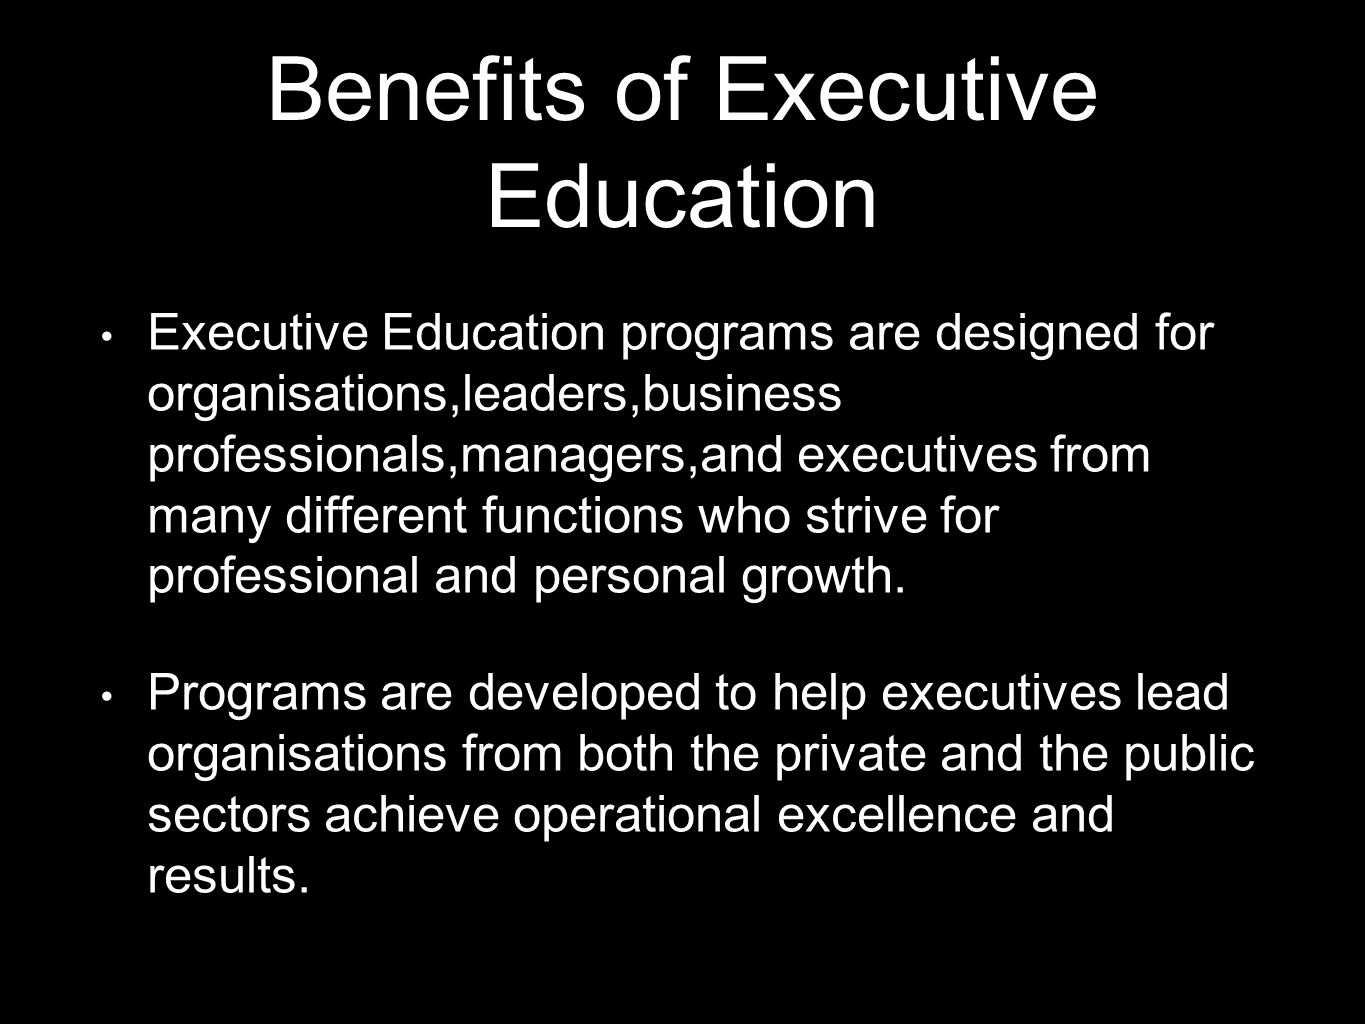 Executive Education programs are designed to have an immediate positive impact on performance,minimise time away from the office,and provide relevant tools and frameworks that add value to any business.